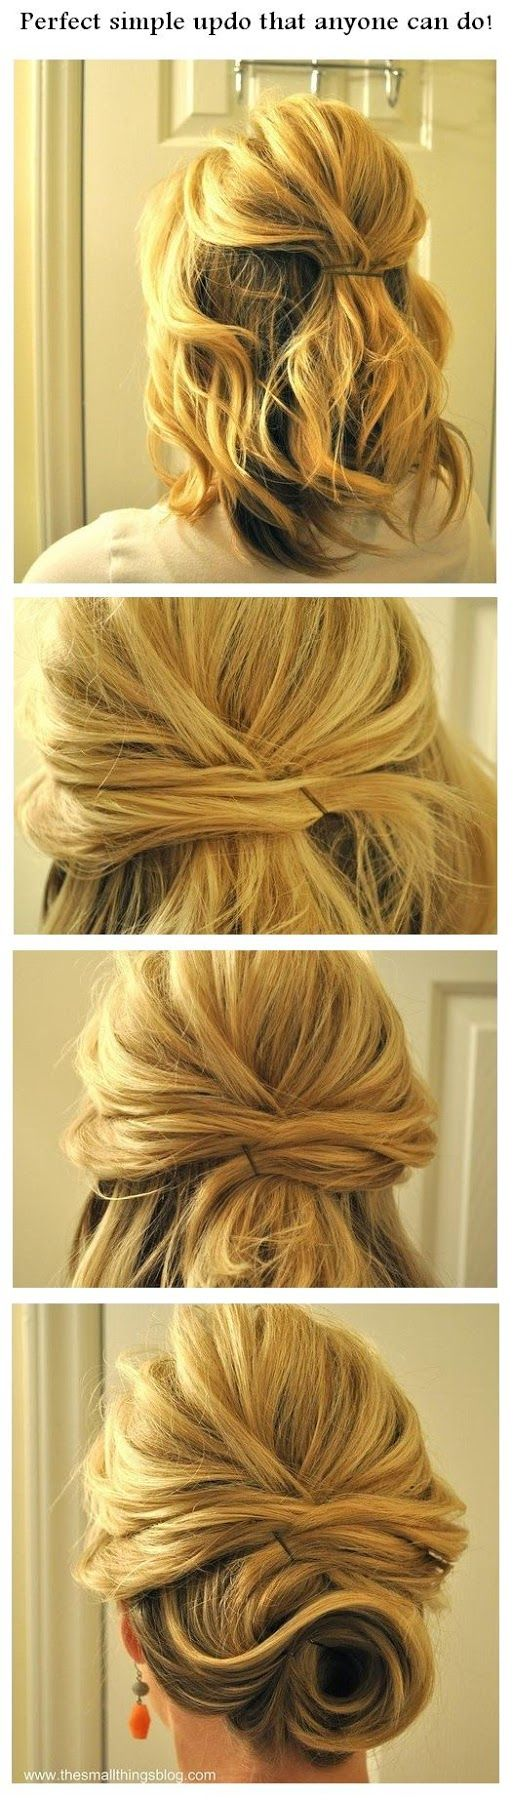 Perfect simple updo that anyone can do! | hairstyles tutorial #hairstyletutorials